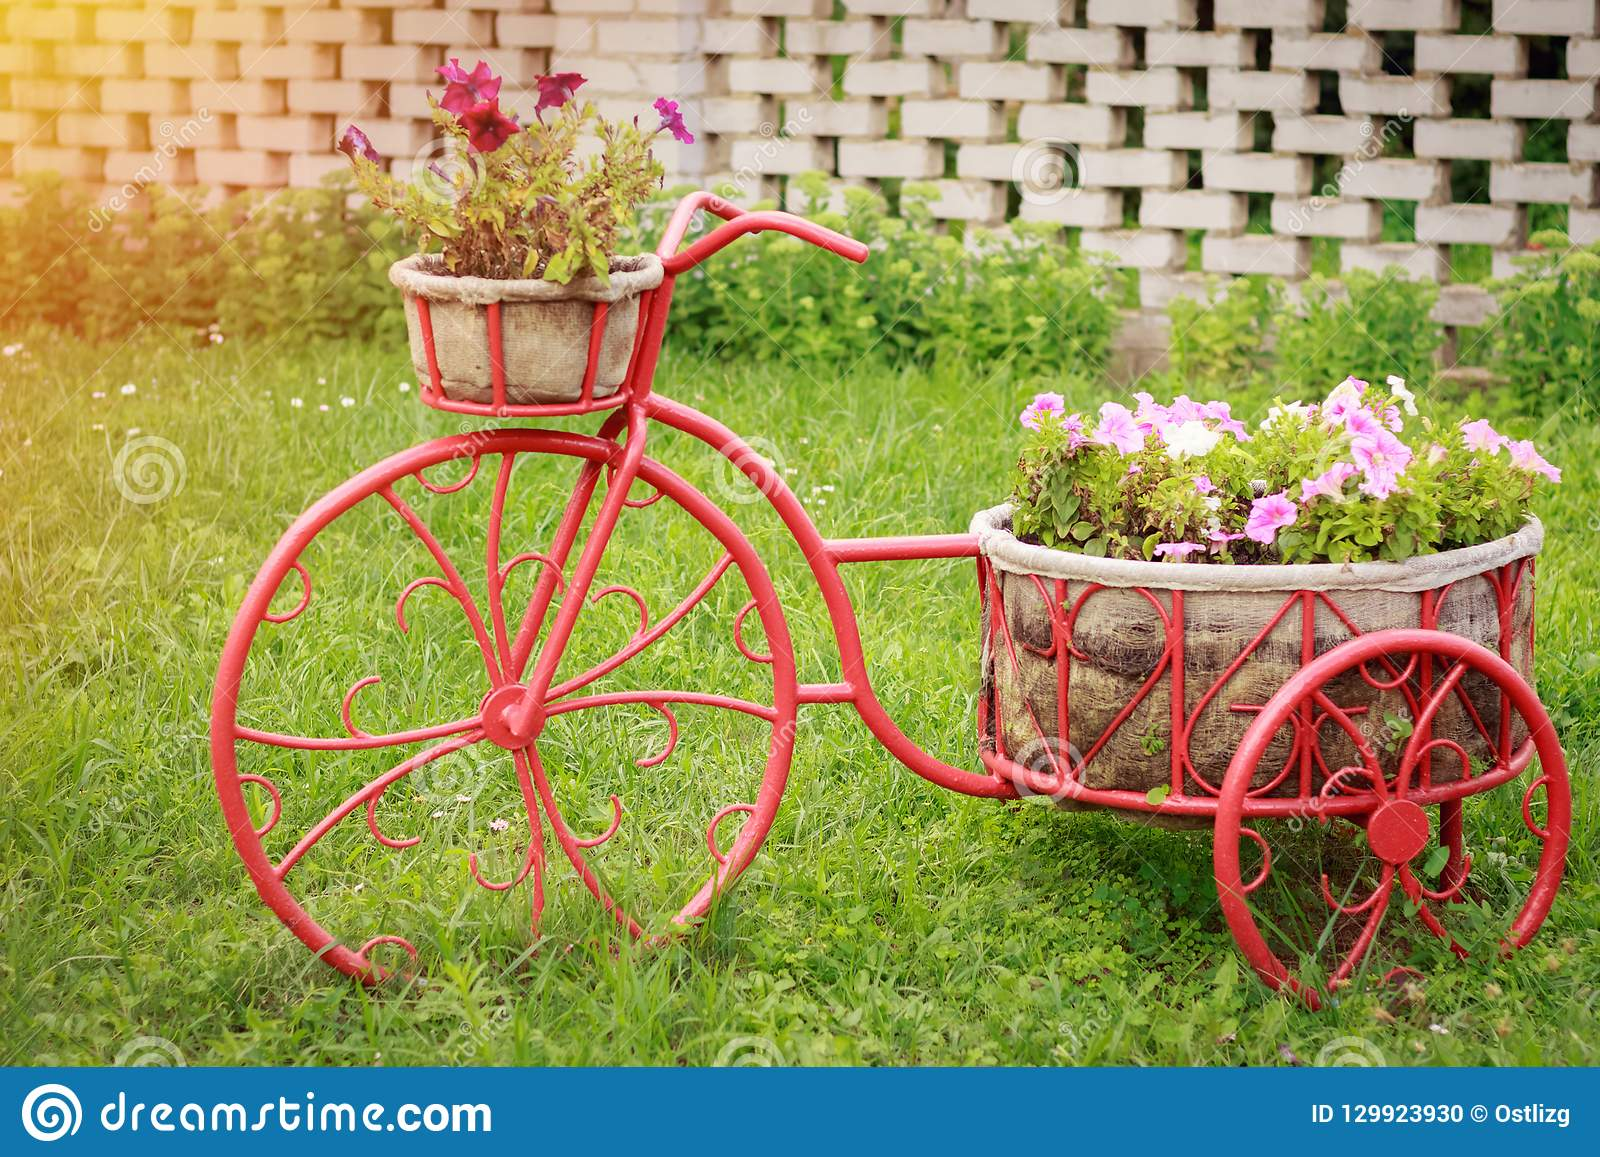 Decor For The Garden And Flowers As A Bicycle Stock Photo - Image